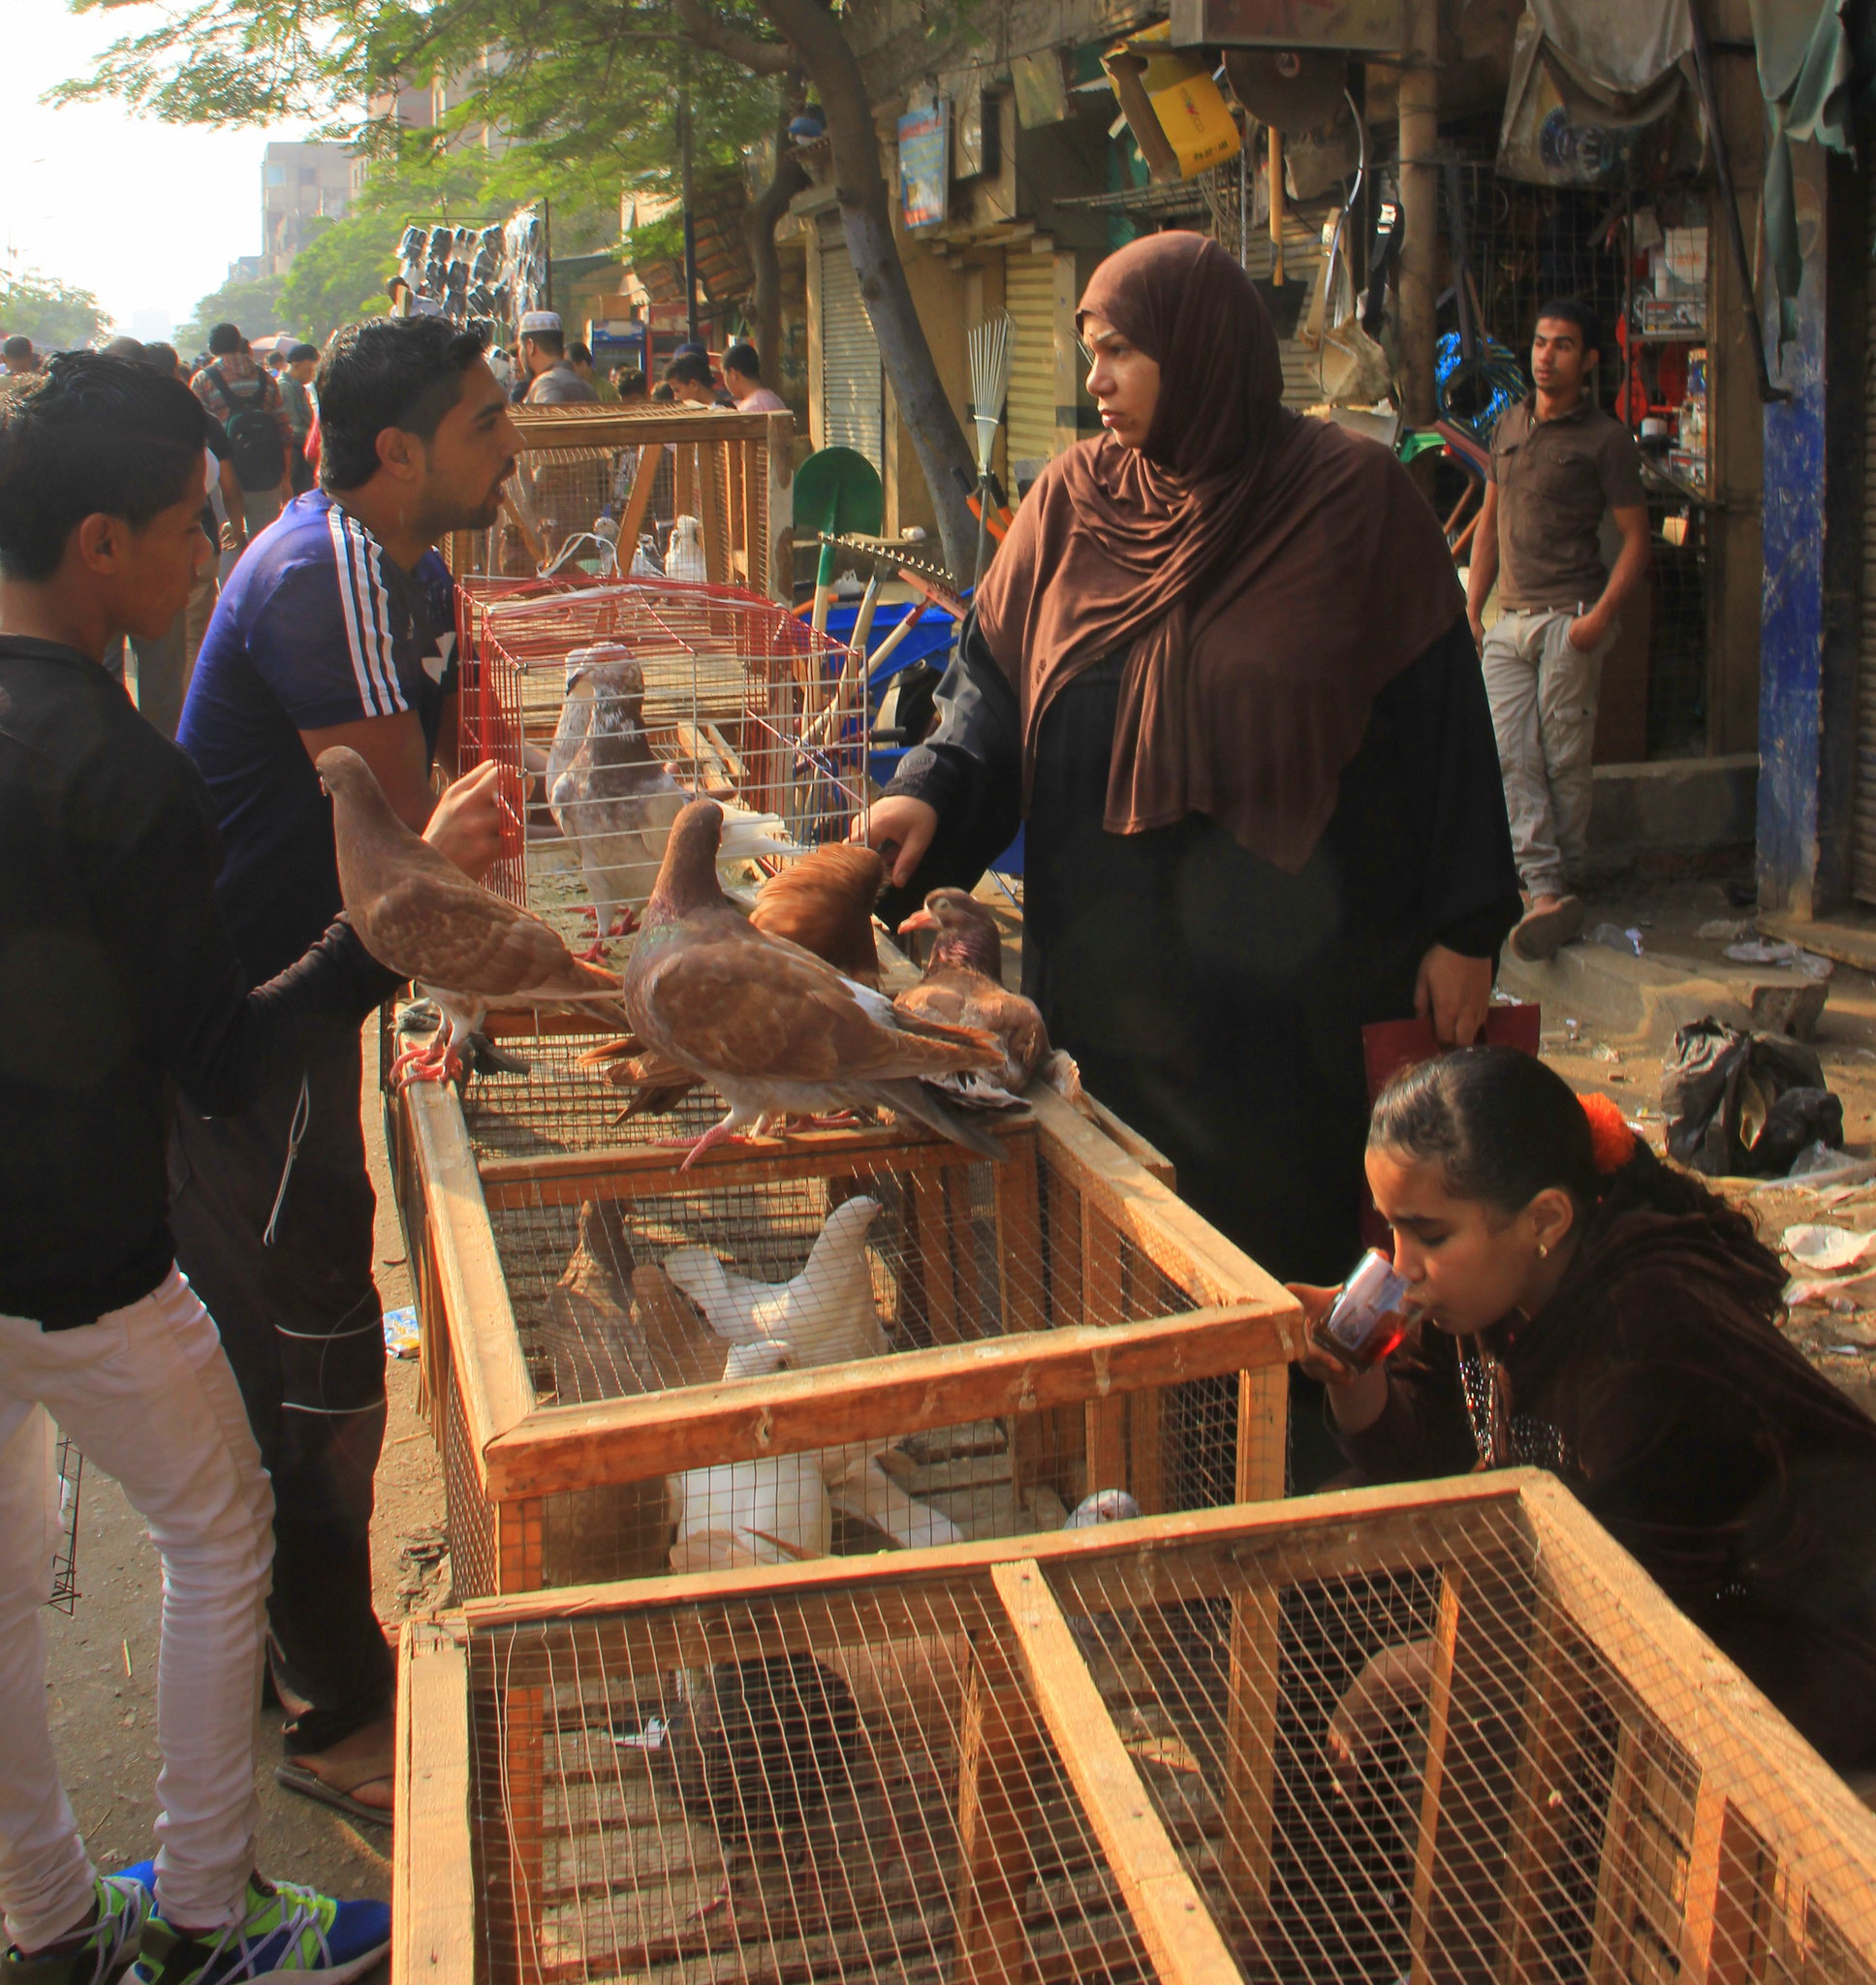 Animal seller at Souq al Goma